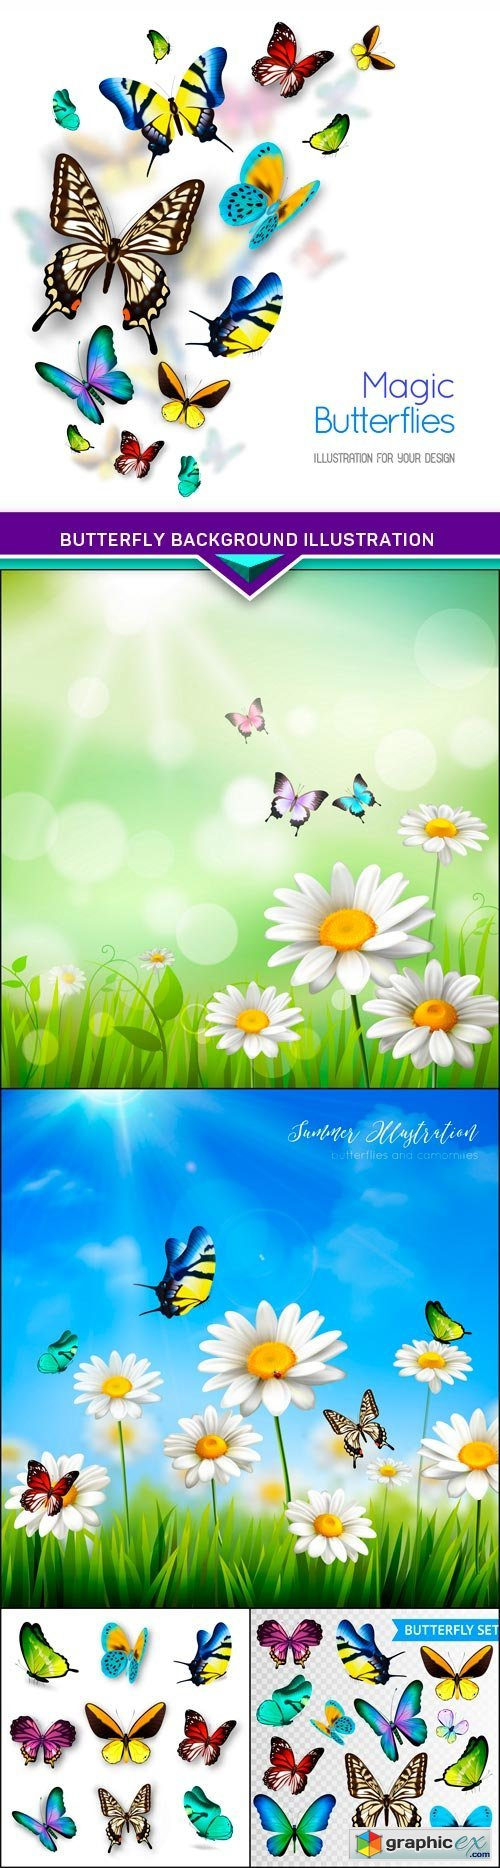 Butterfly Background Illustration 5X EPS